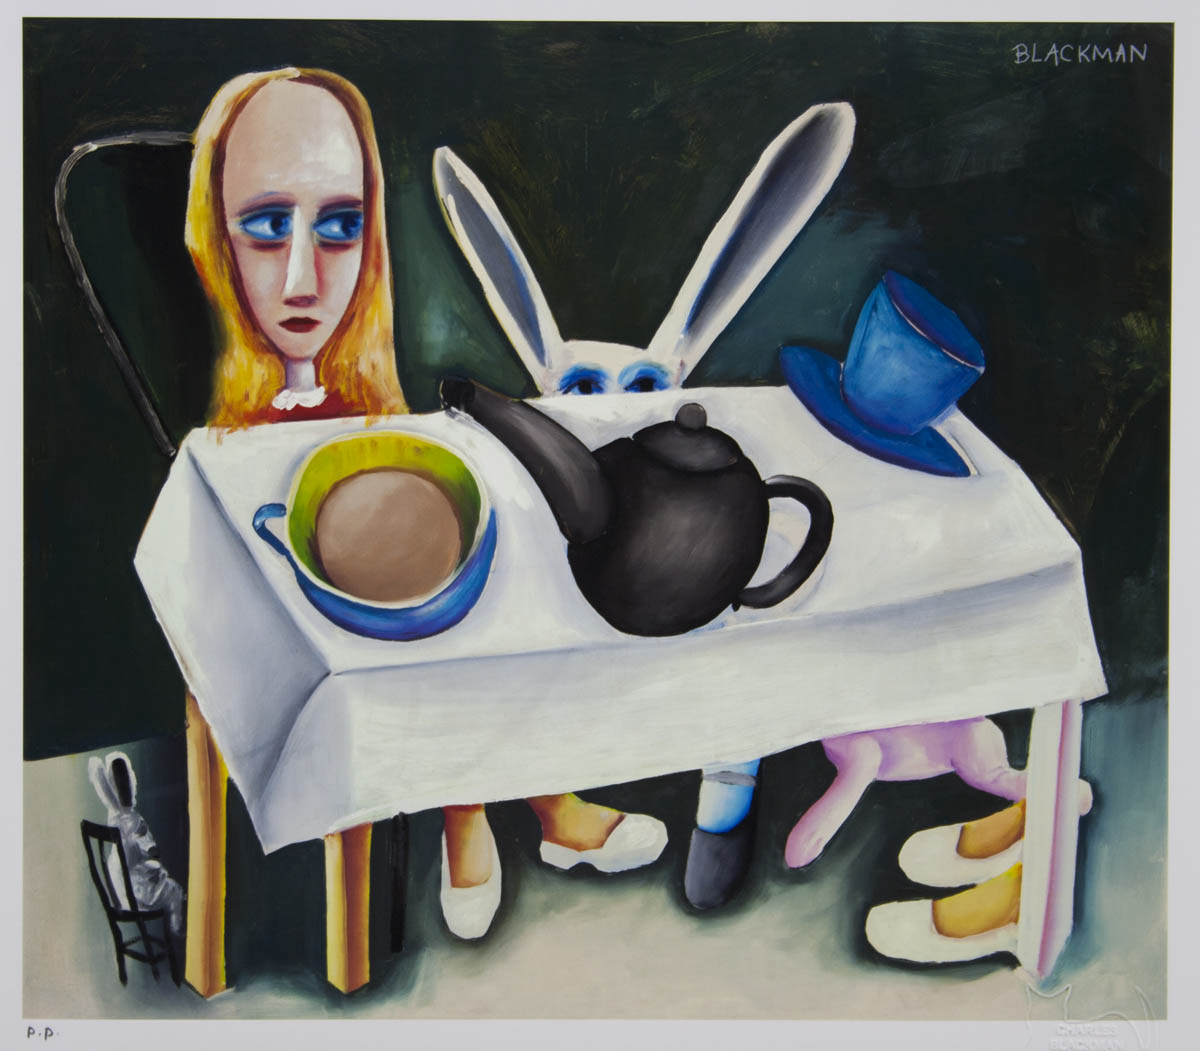 Charles Blackman 'Feet Beneath the Table'